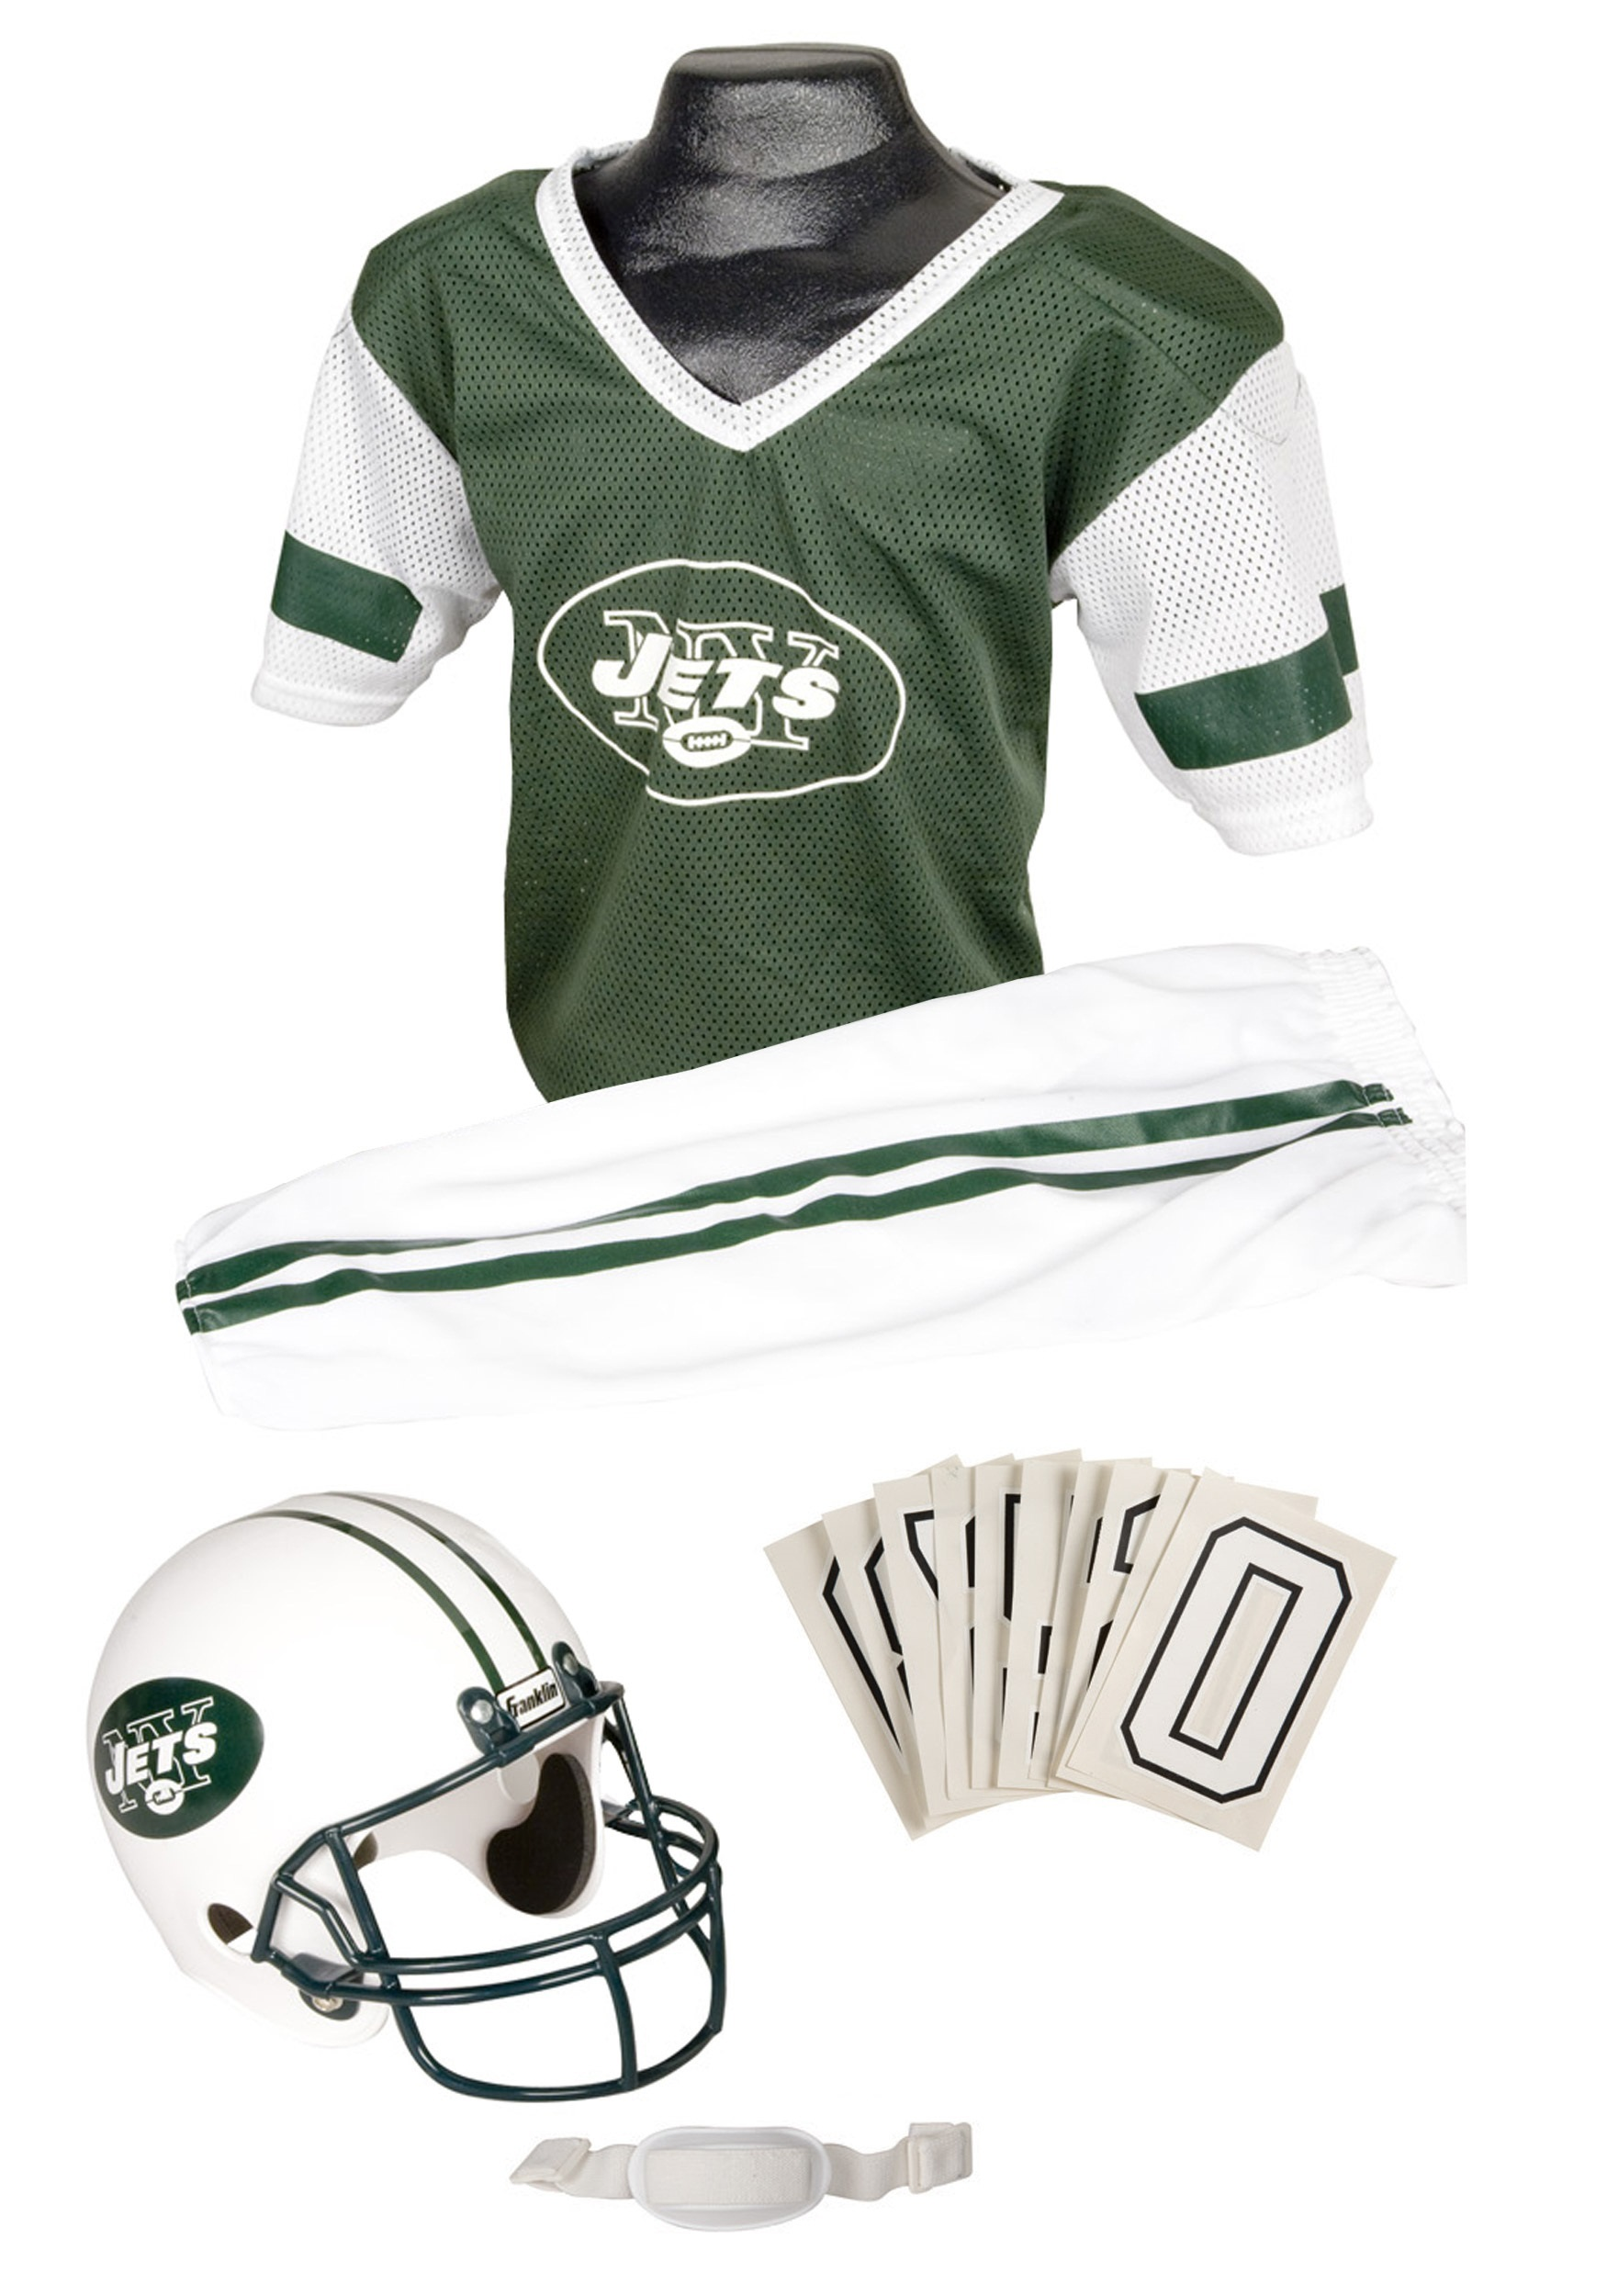 NFL Jets Uniform Costume